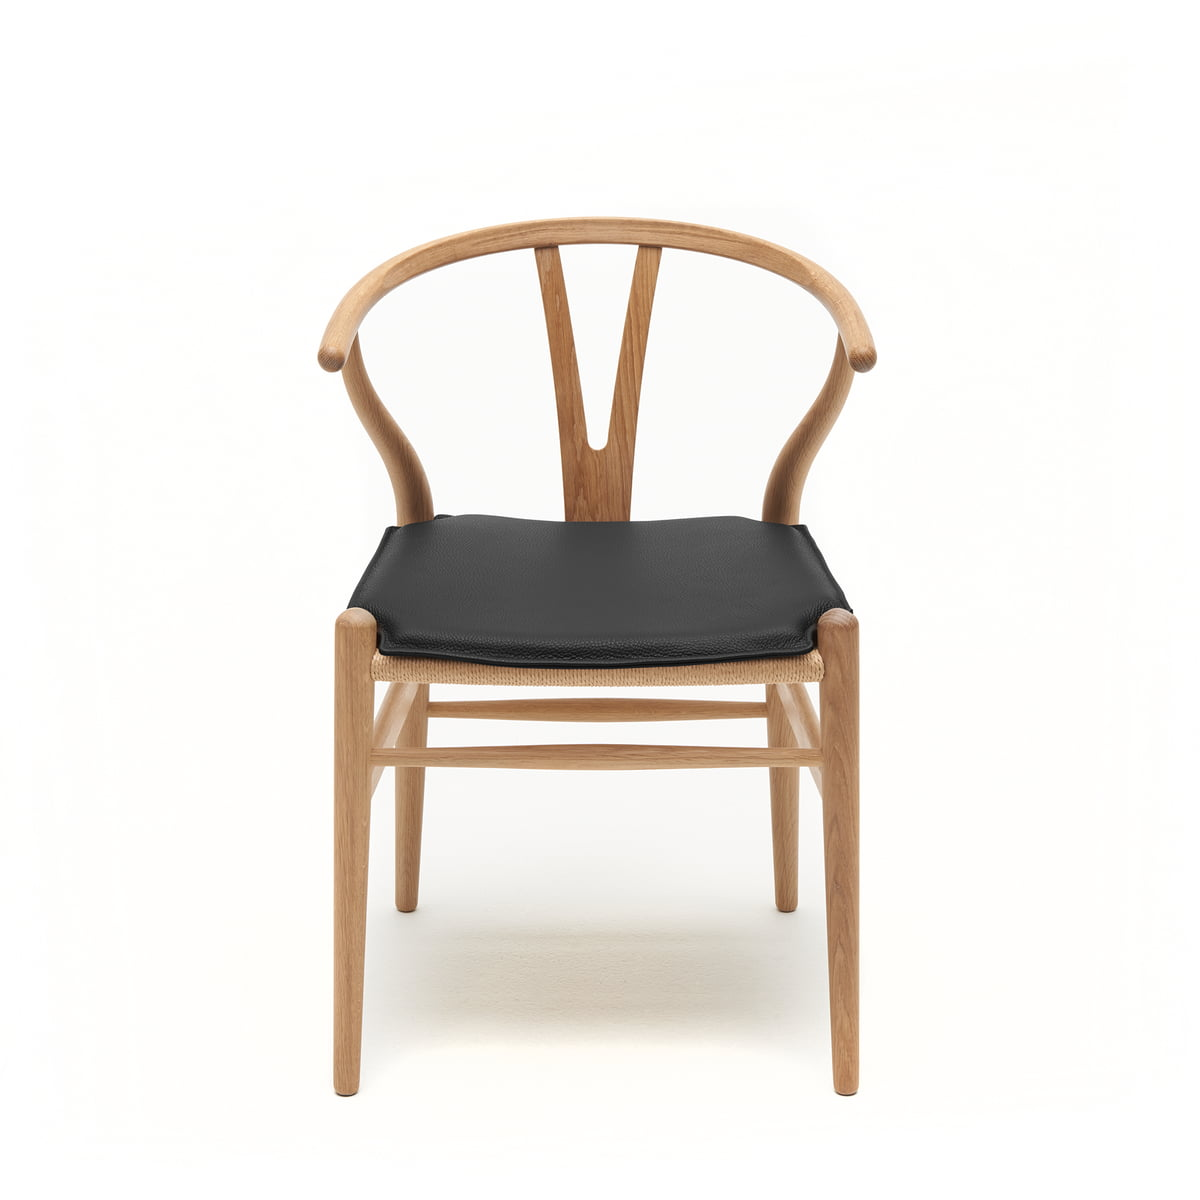 leder kissen f r ch24 wishbone chair von carl hansen. Black Bedroom Furniture Sets. Home Design Ideas